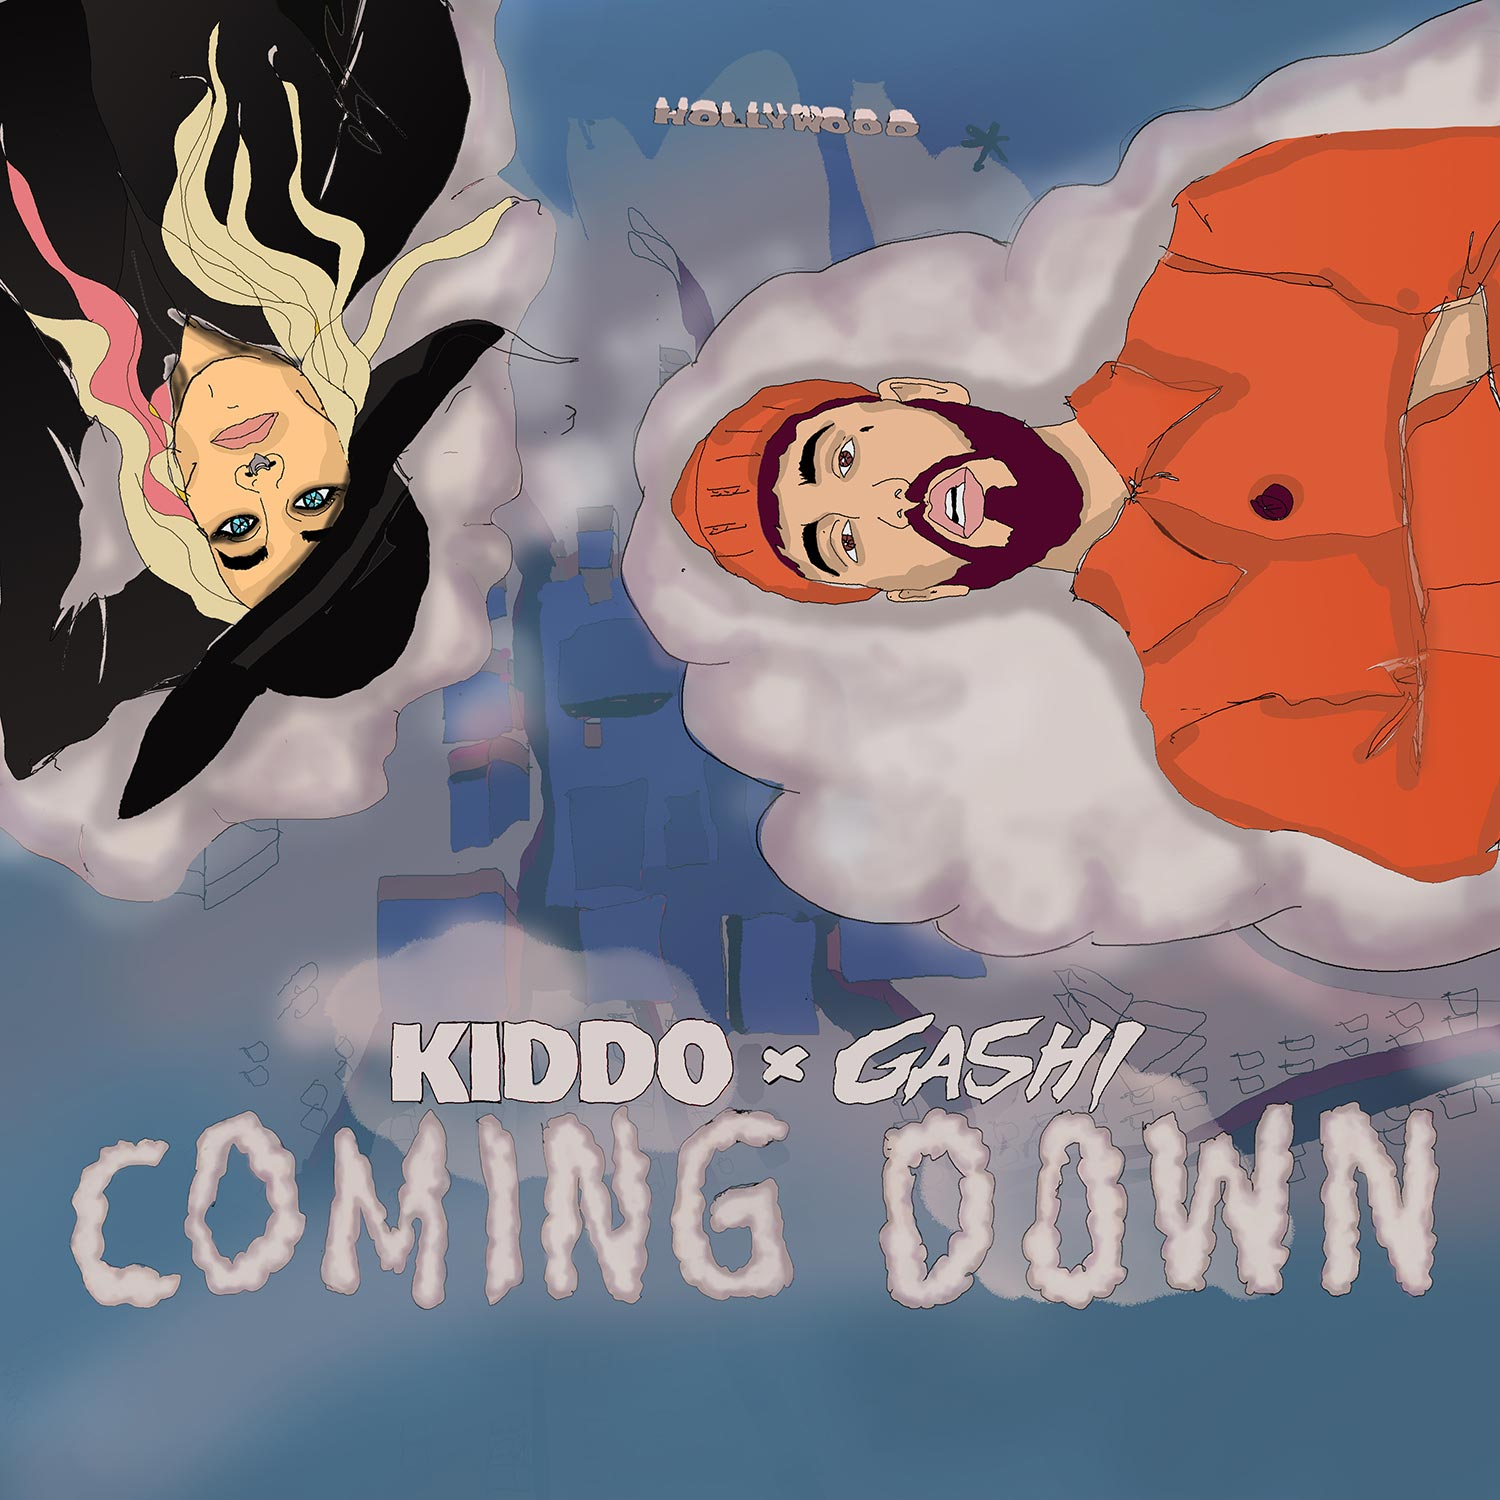 KIDDO Coming Down Cover